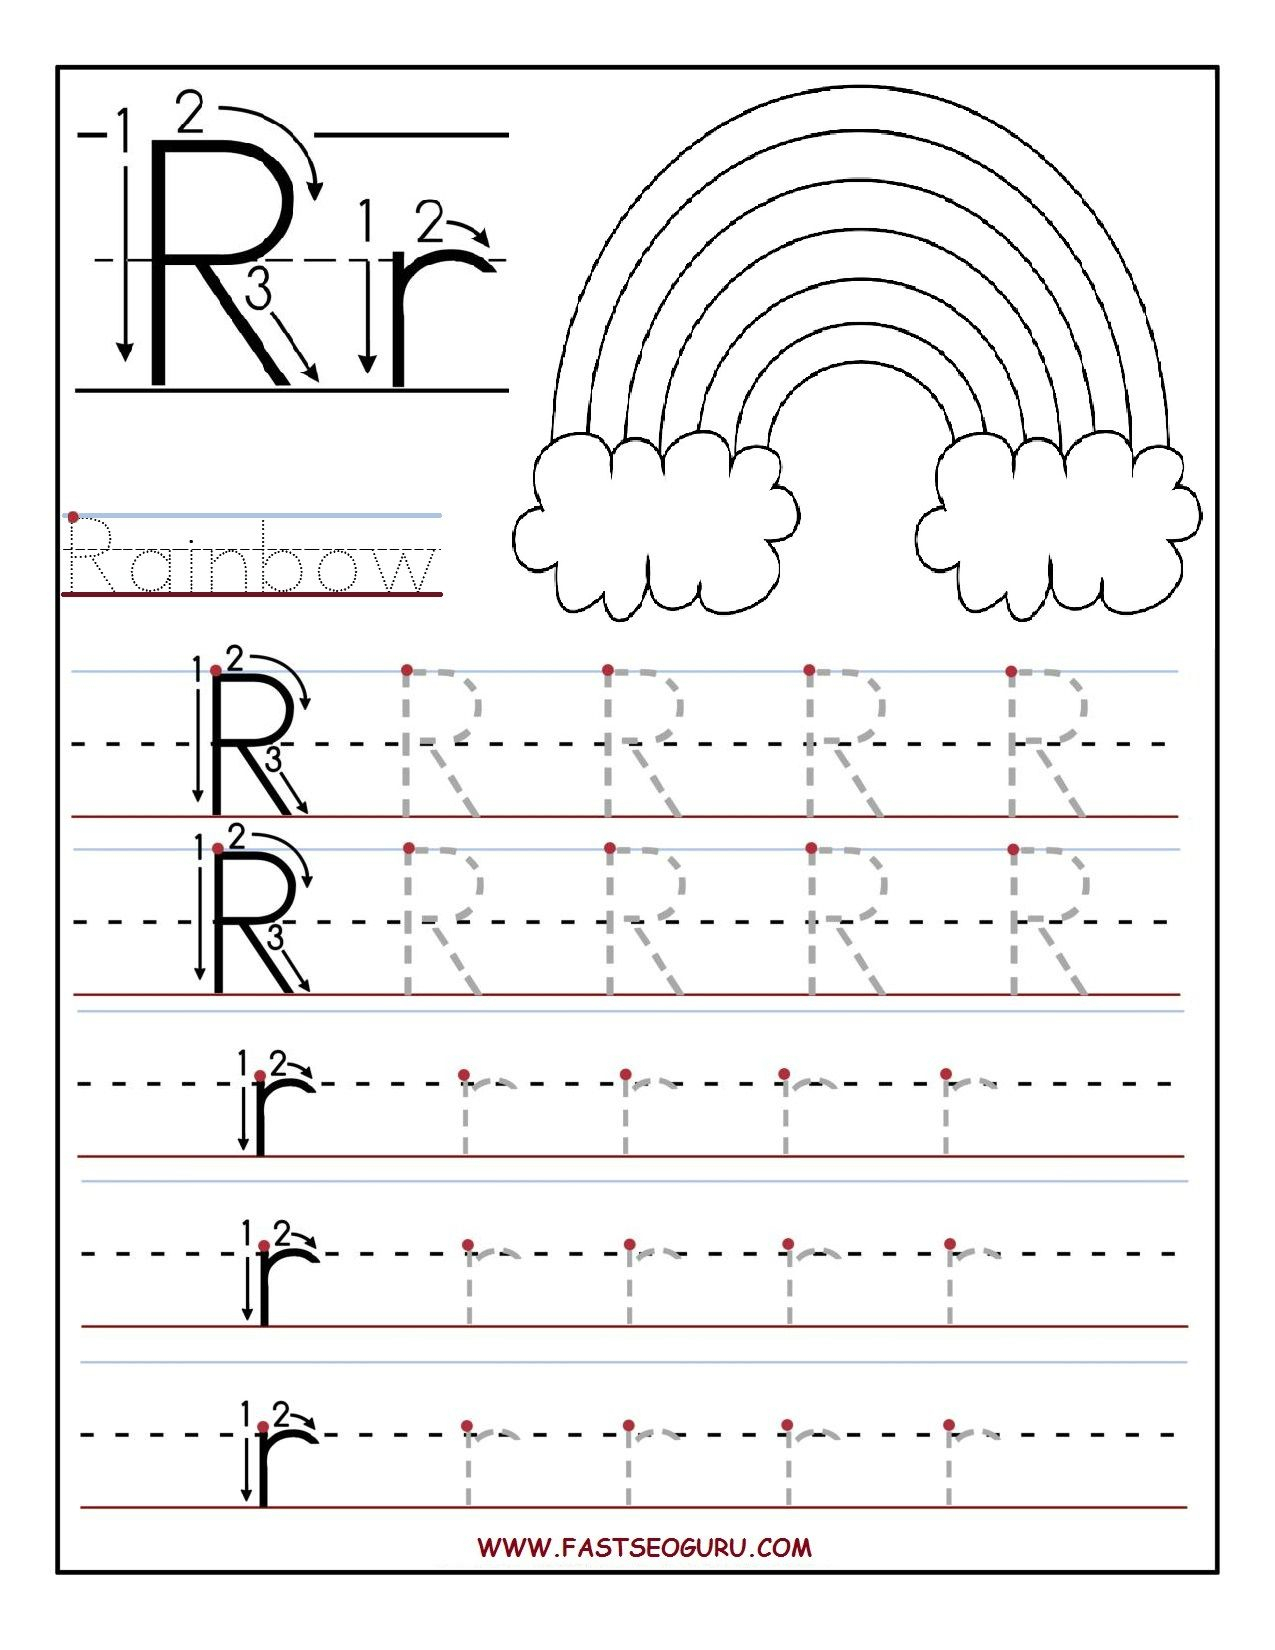 Printable Letter R Tracing Worksheets For Preschool | Letter with regard to Letter R Worksheets Printable